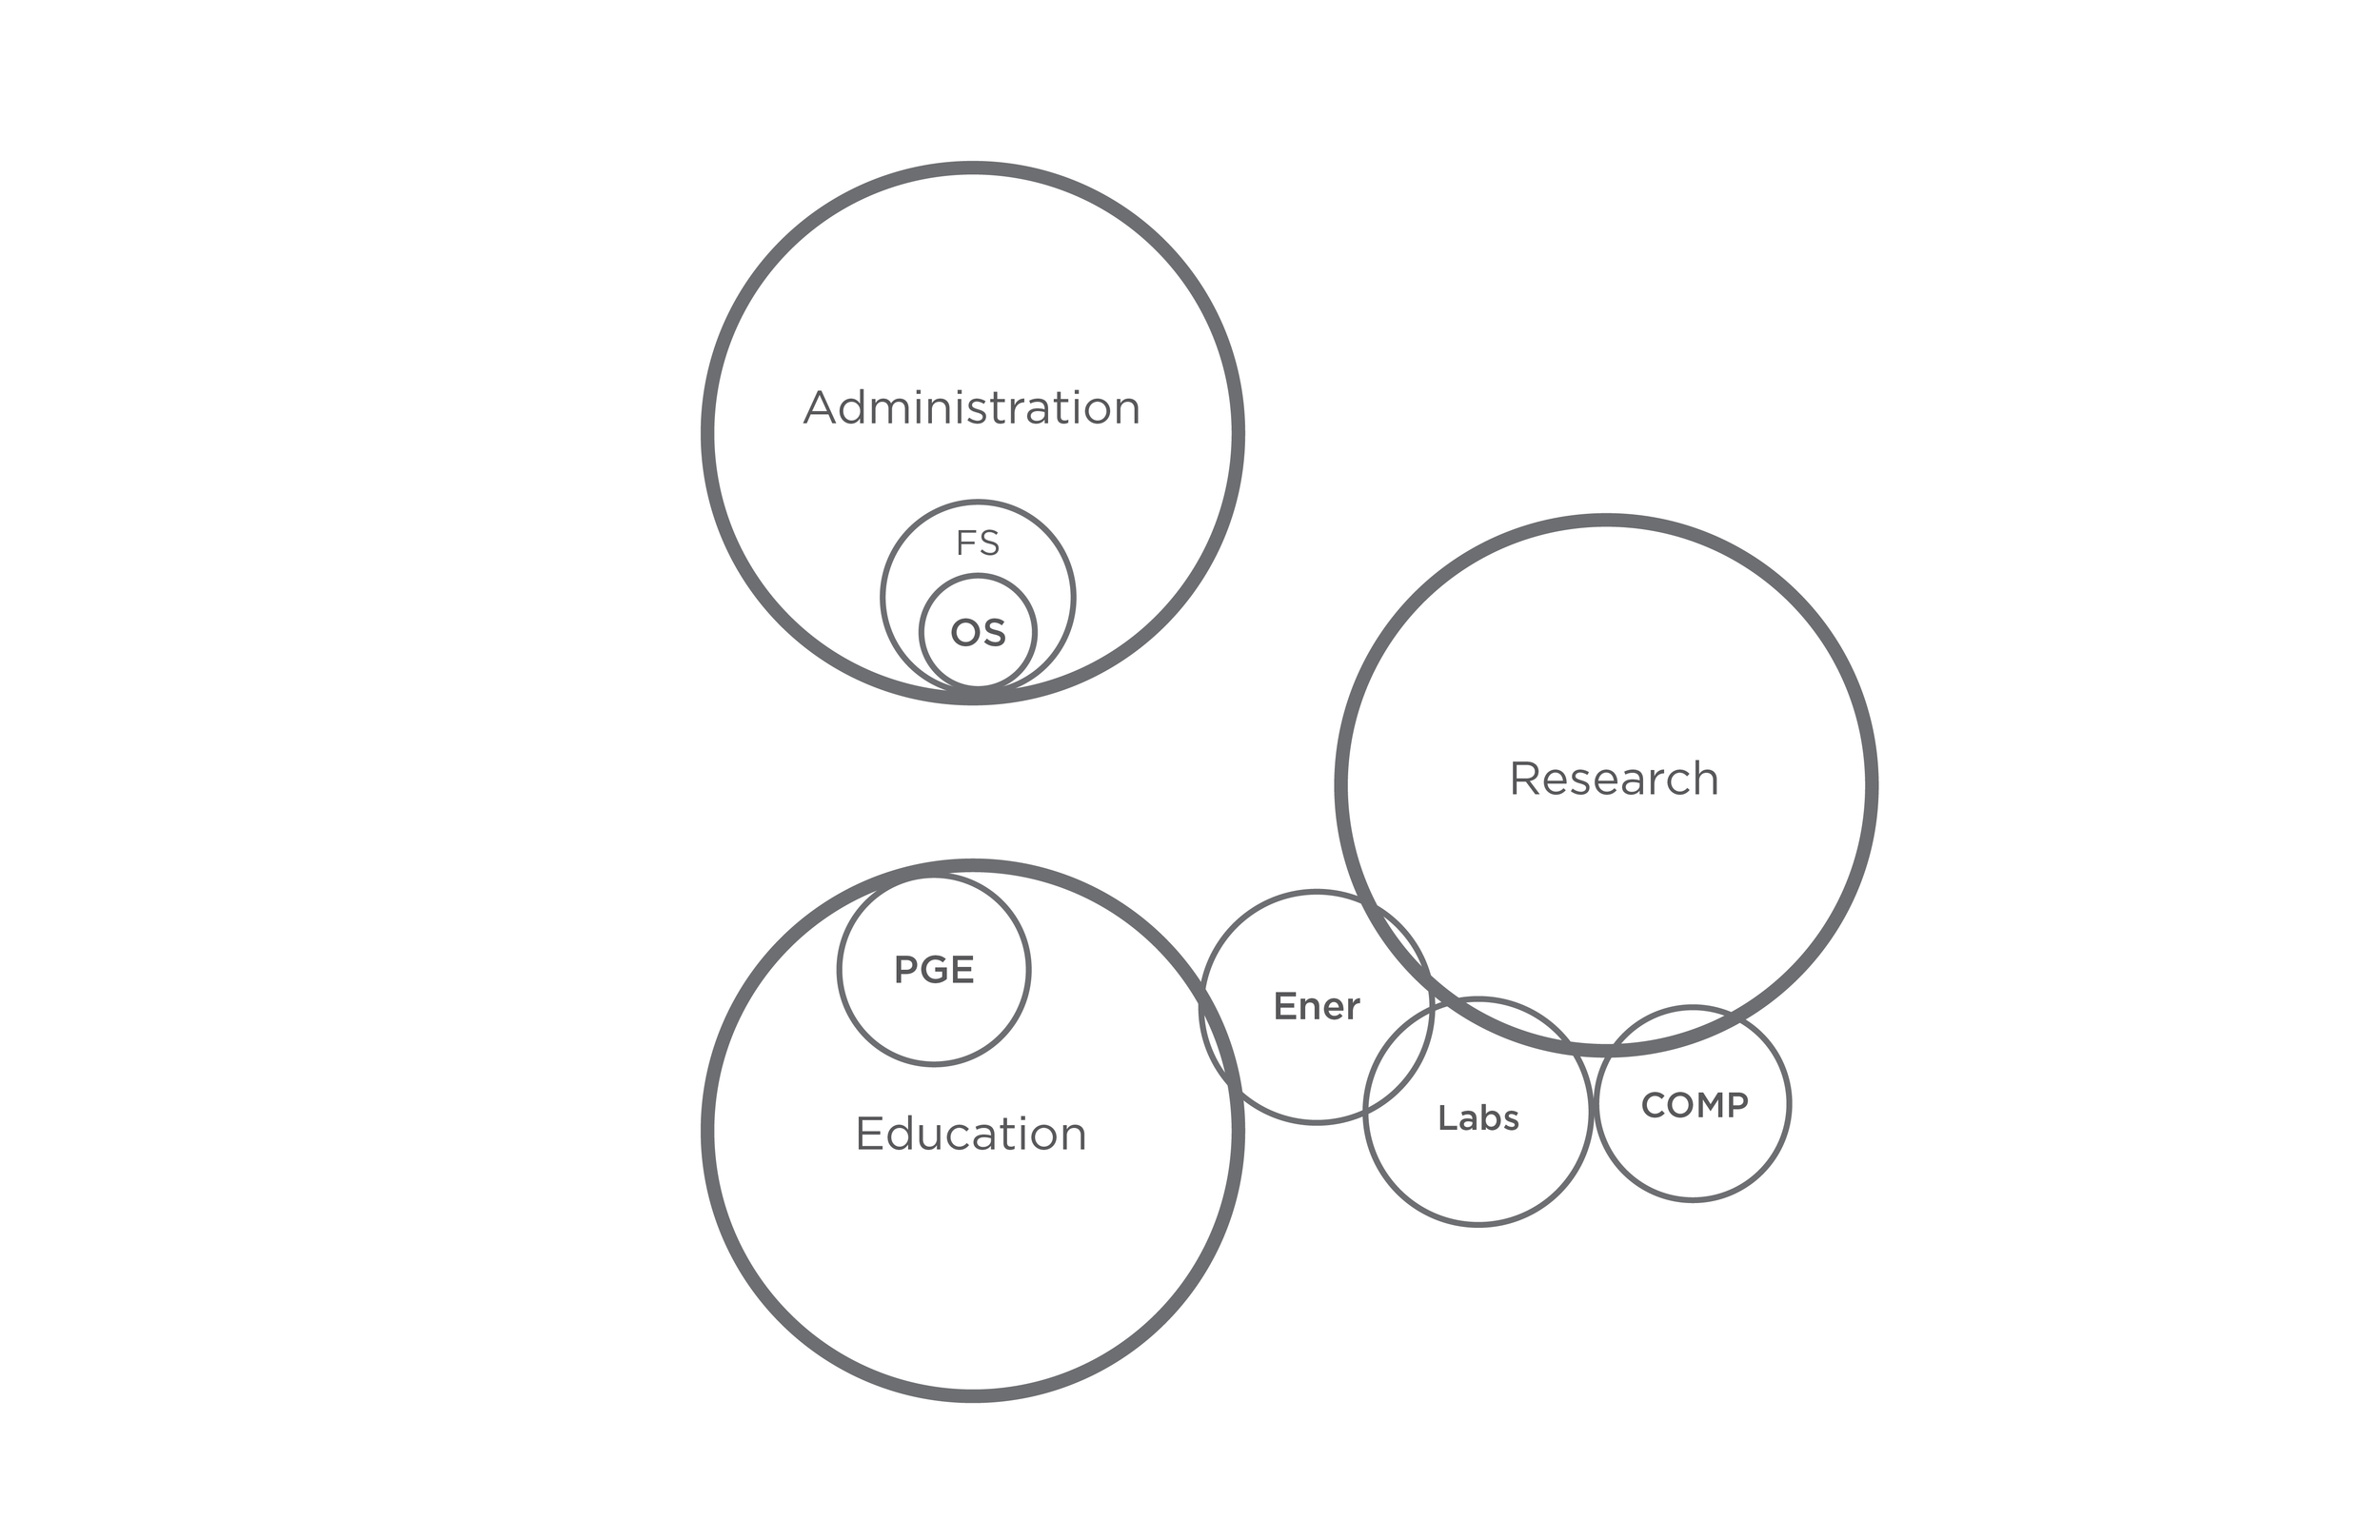 sustainable org diagrams-02.png